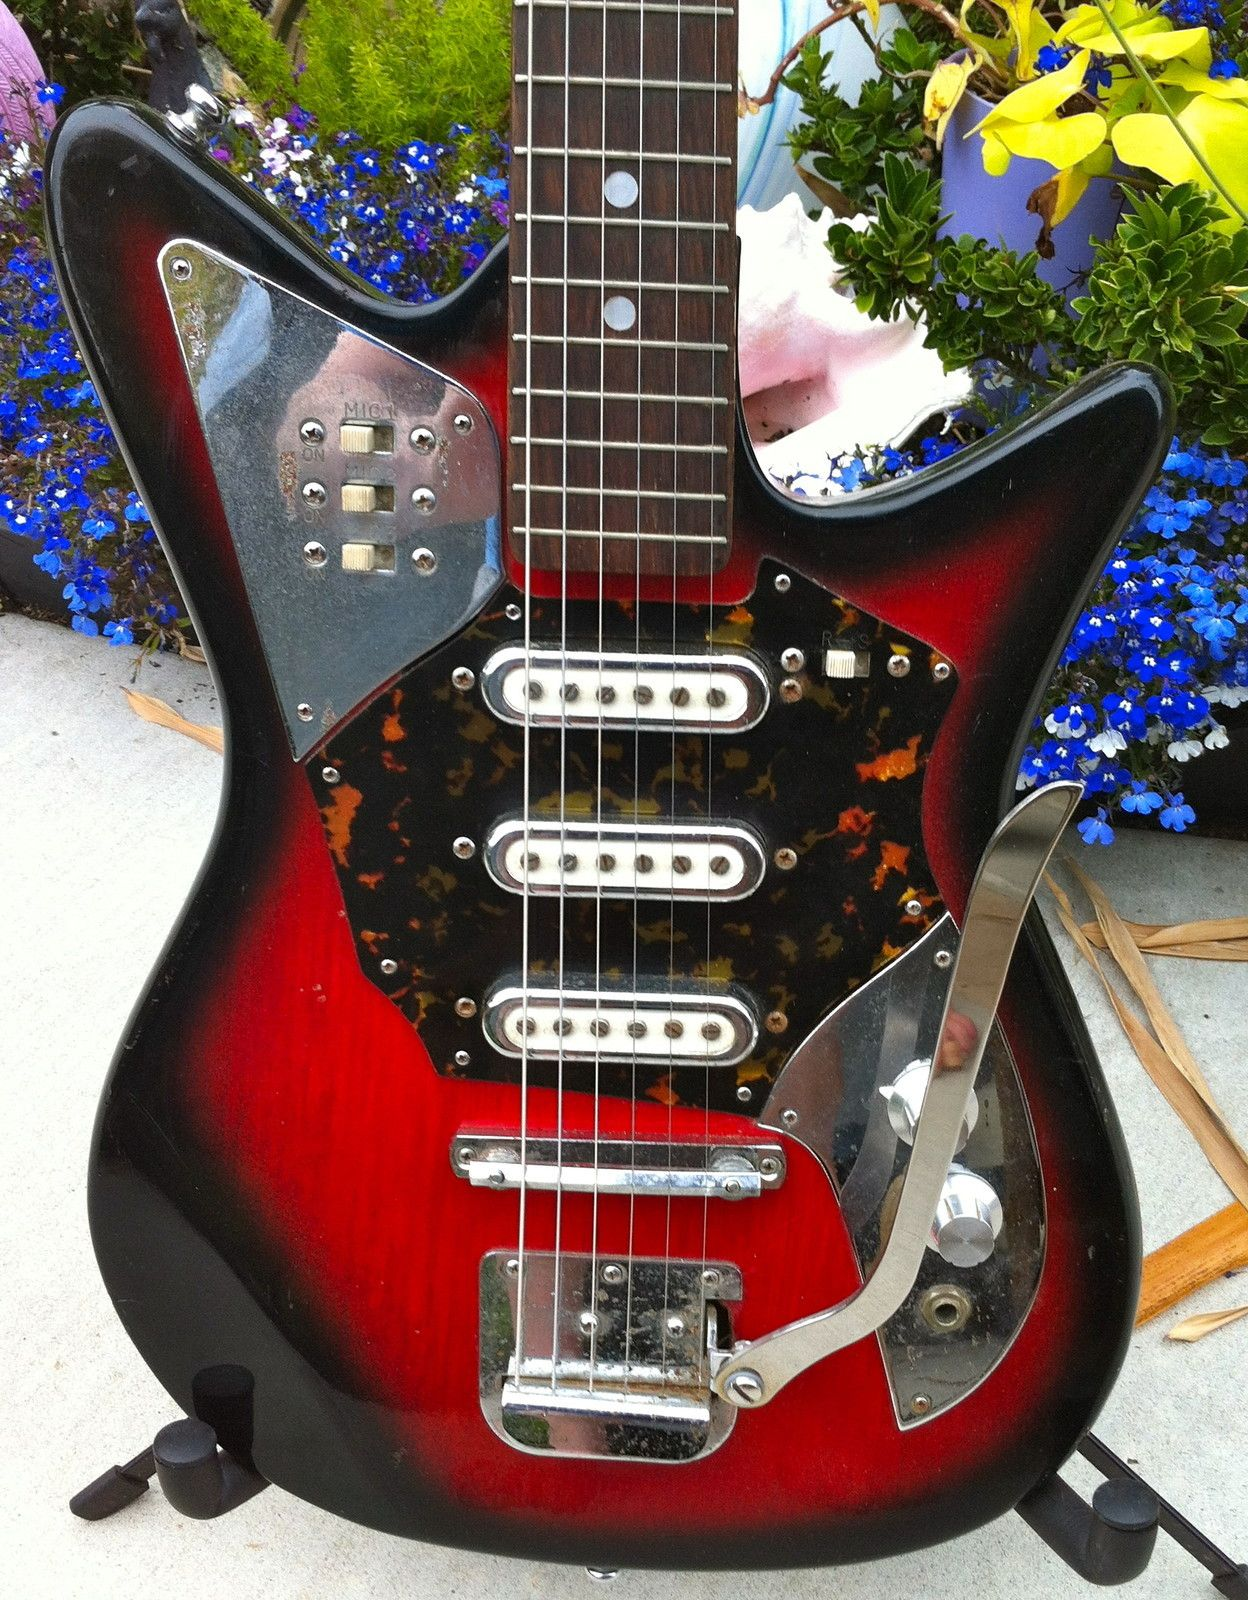 d55be24c6de3086995f5dcb66f9eed6e vintage 1960's audition electric guitar by teisco, japan vintage Kingston Guitars 50s at soozxer.org